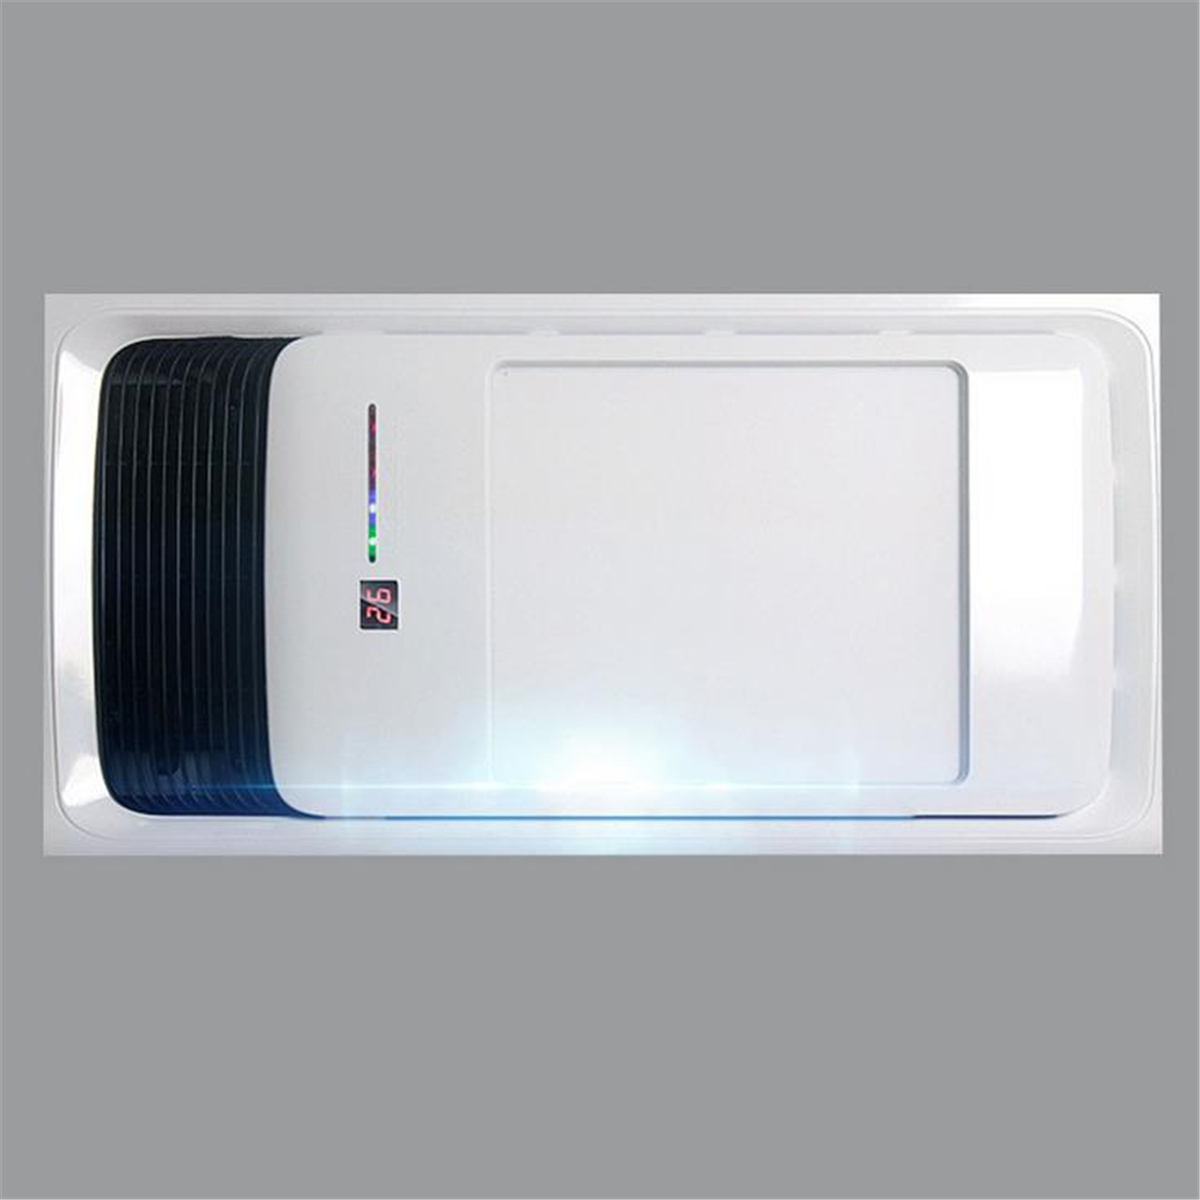 Wall mounted bathroom electric heater exhaust fan warmer - Electric wall mounted heaters for bathrooms ...